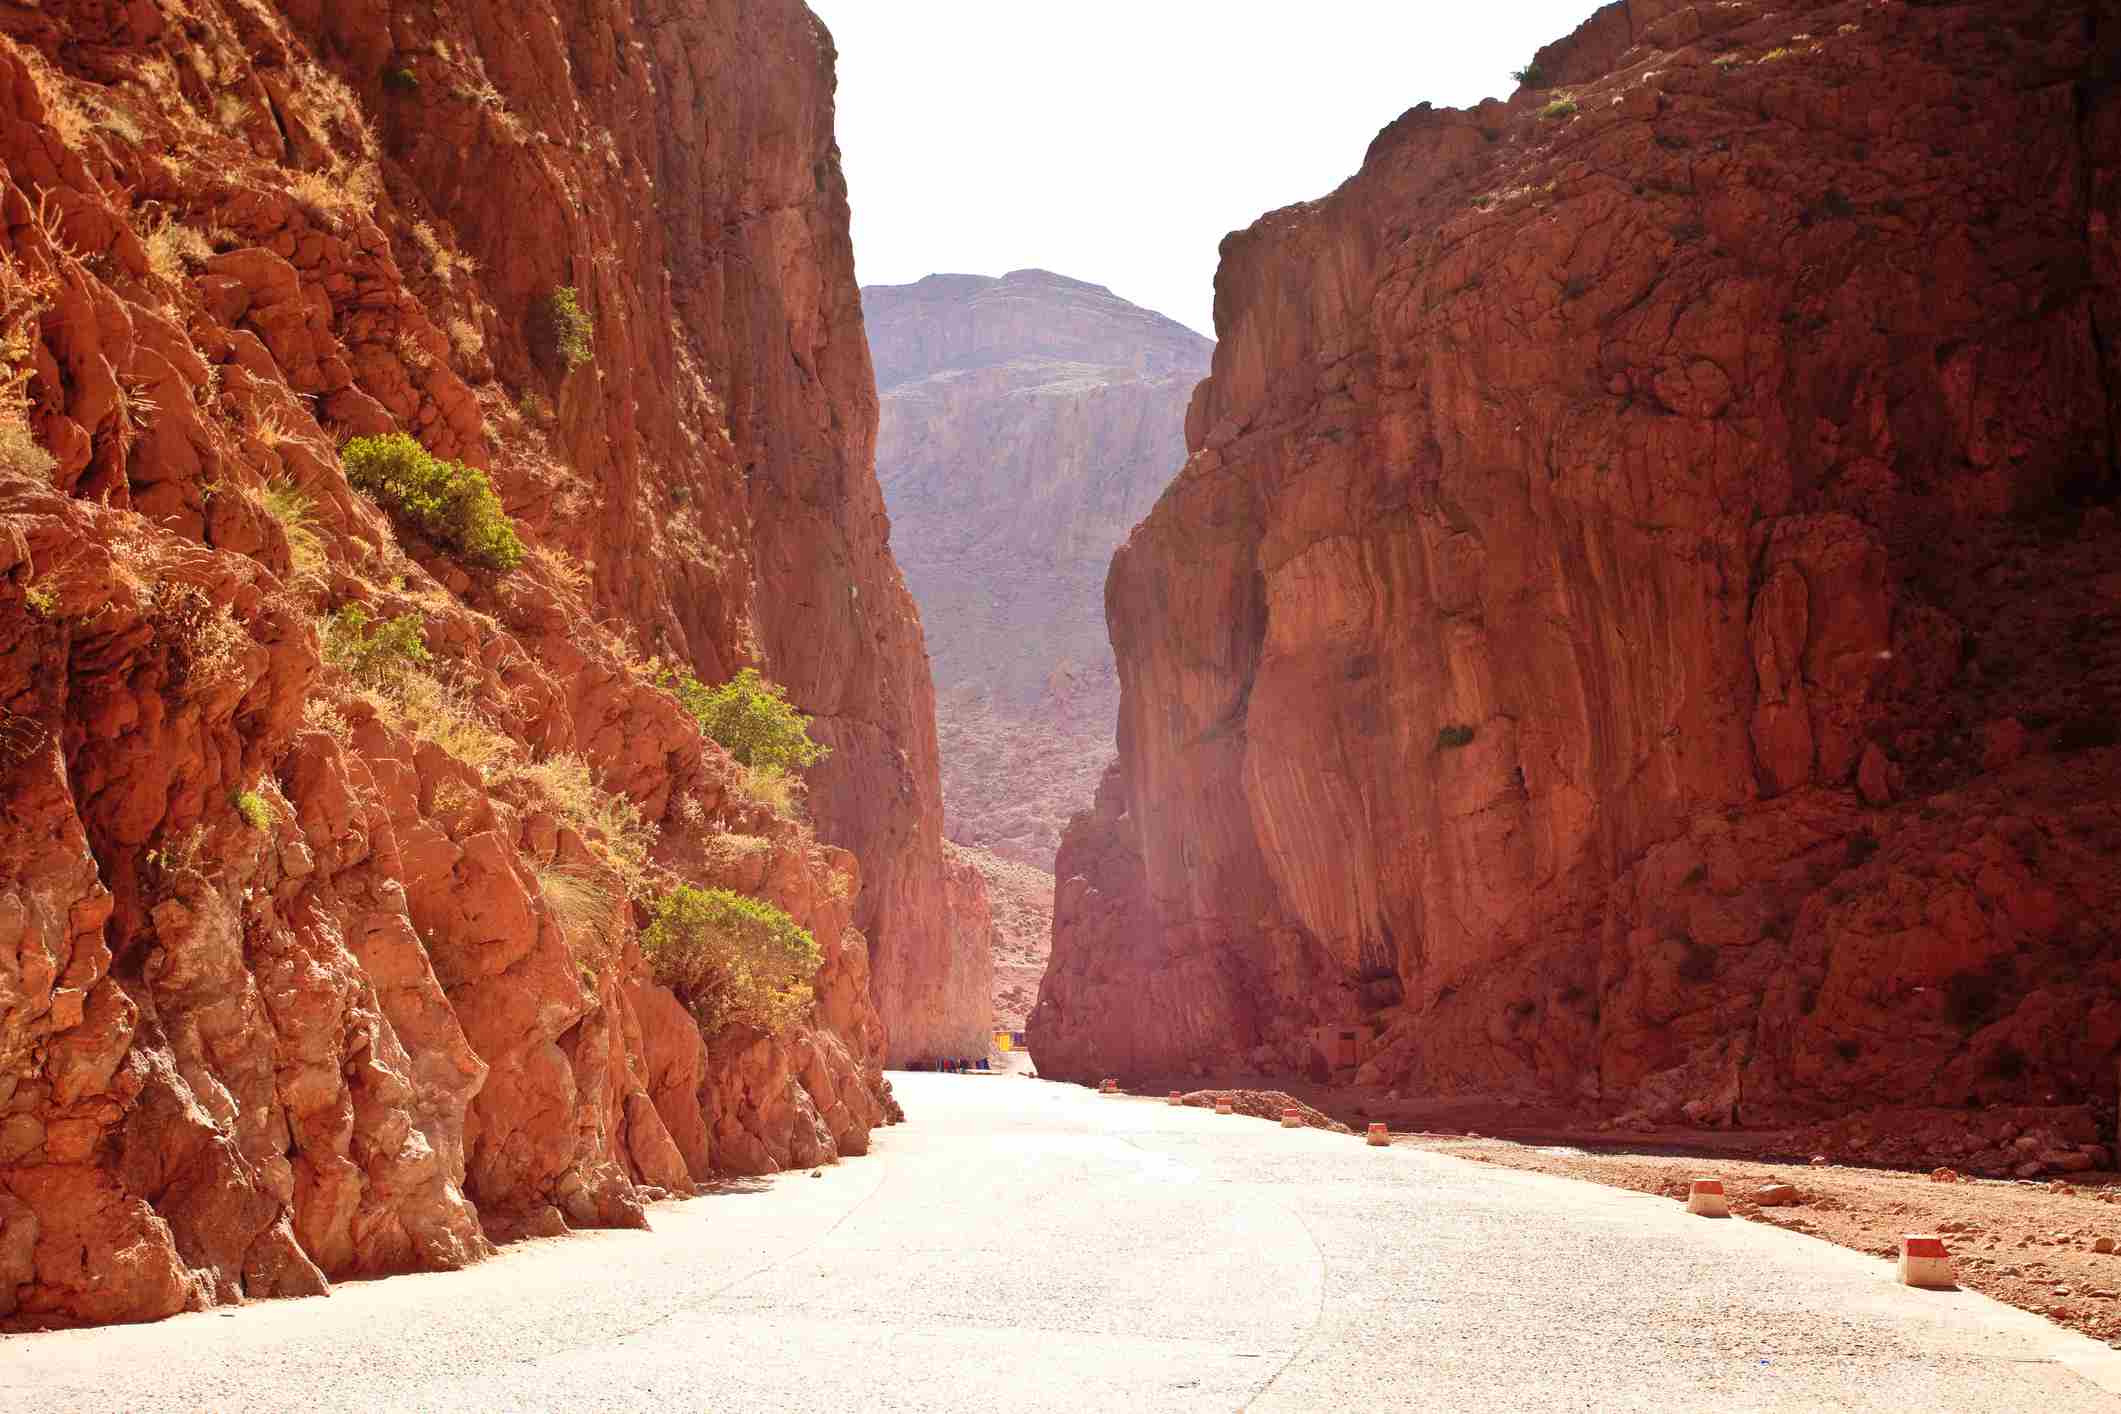 Todra Gorge in the Dades Valley, Morocco